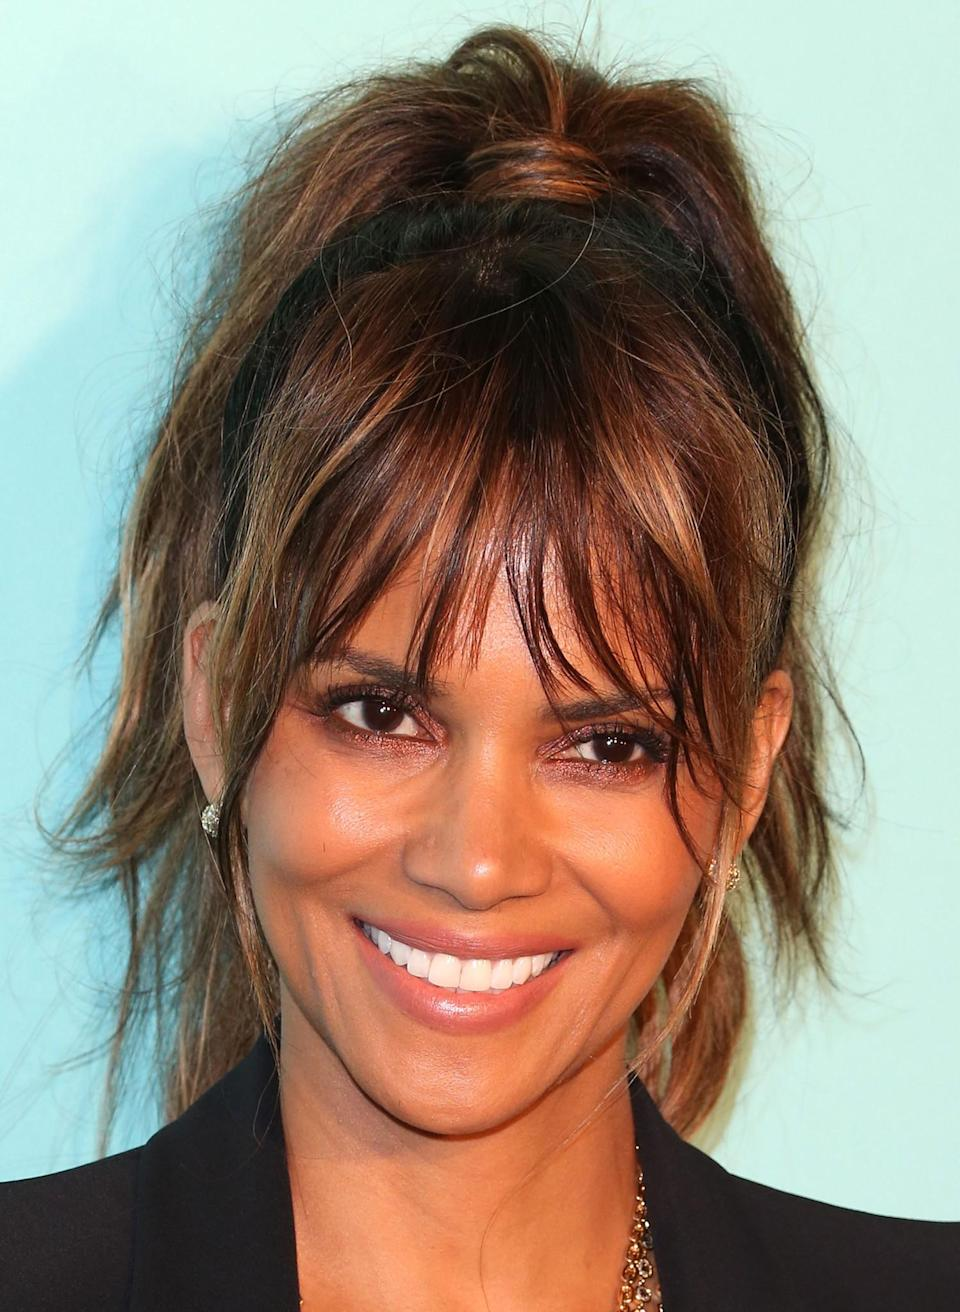 """<p>In 2002, the well-known face became the first black woman to win an Oscar for Best Leading Actress. She won the acclaimed statue for her role in Monster's Ball, a romantic Southern drama. Halle's emotional acceptance speech is still remembered today as she thanked those who had forged the path for her: """"This moment is so much bigger than me. It's for every nameless, faceless woman of colour that now has a chance because this door tonight has been opened."""" <i>[Photo: Getty]</i> </p>"""